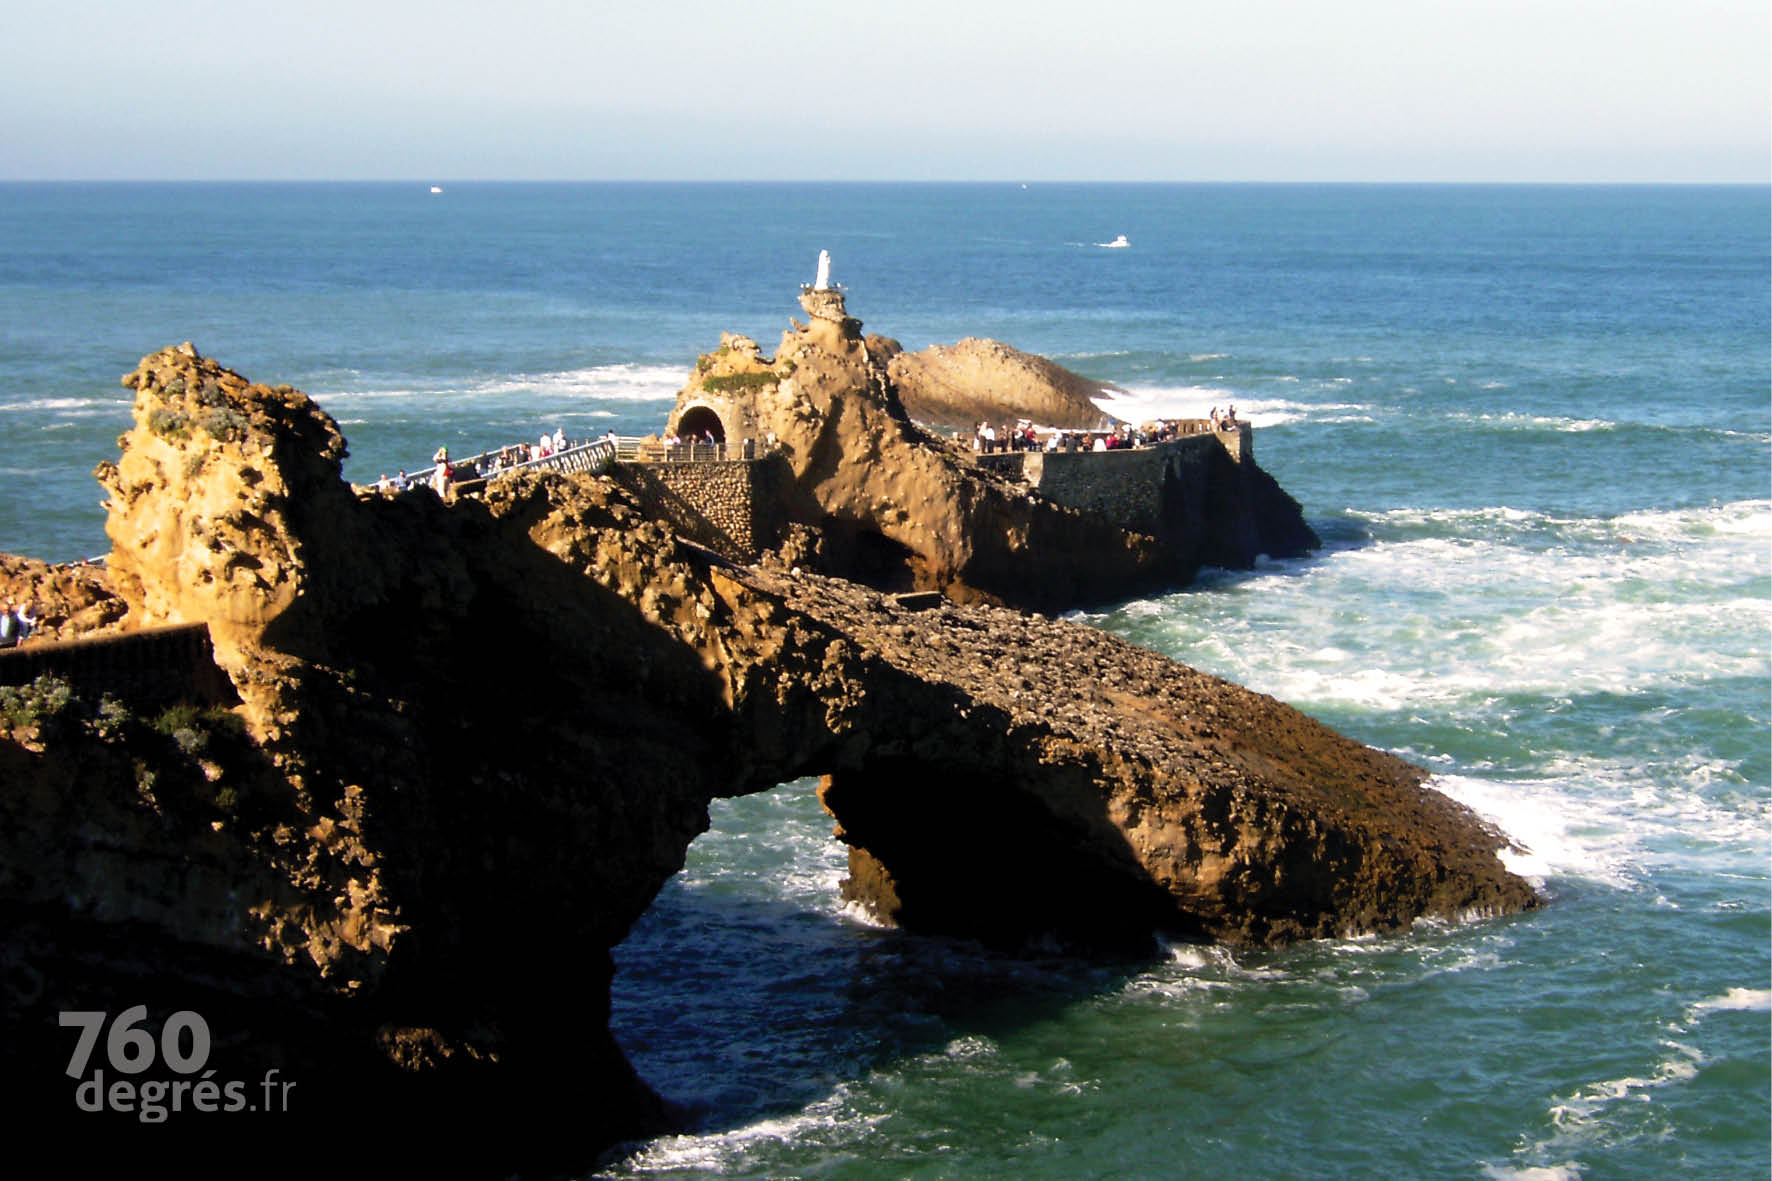 760degres-pays-basque-biarritz-01